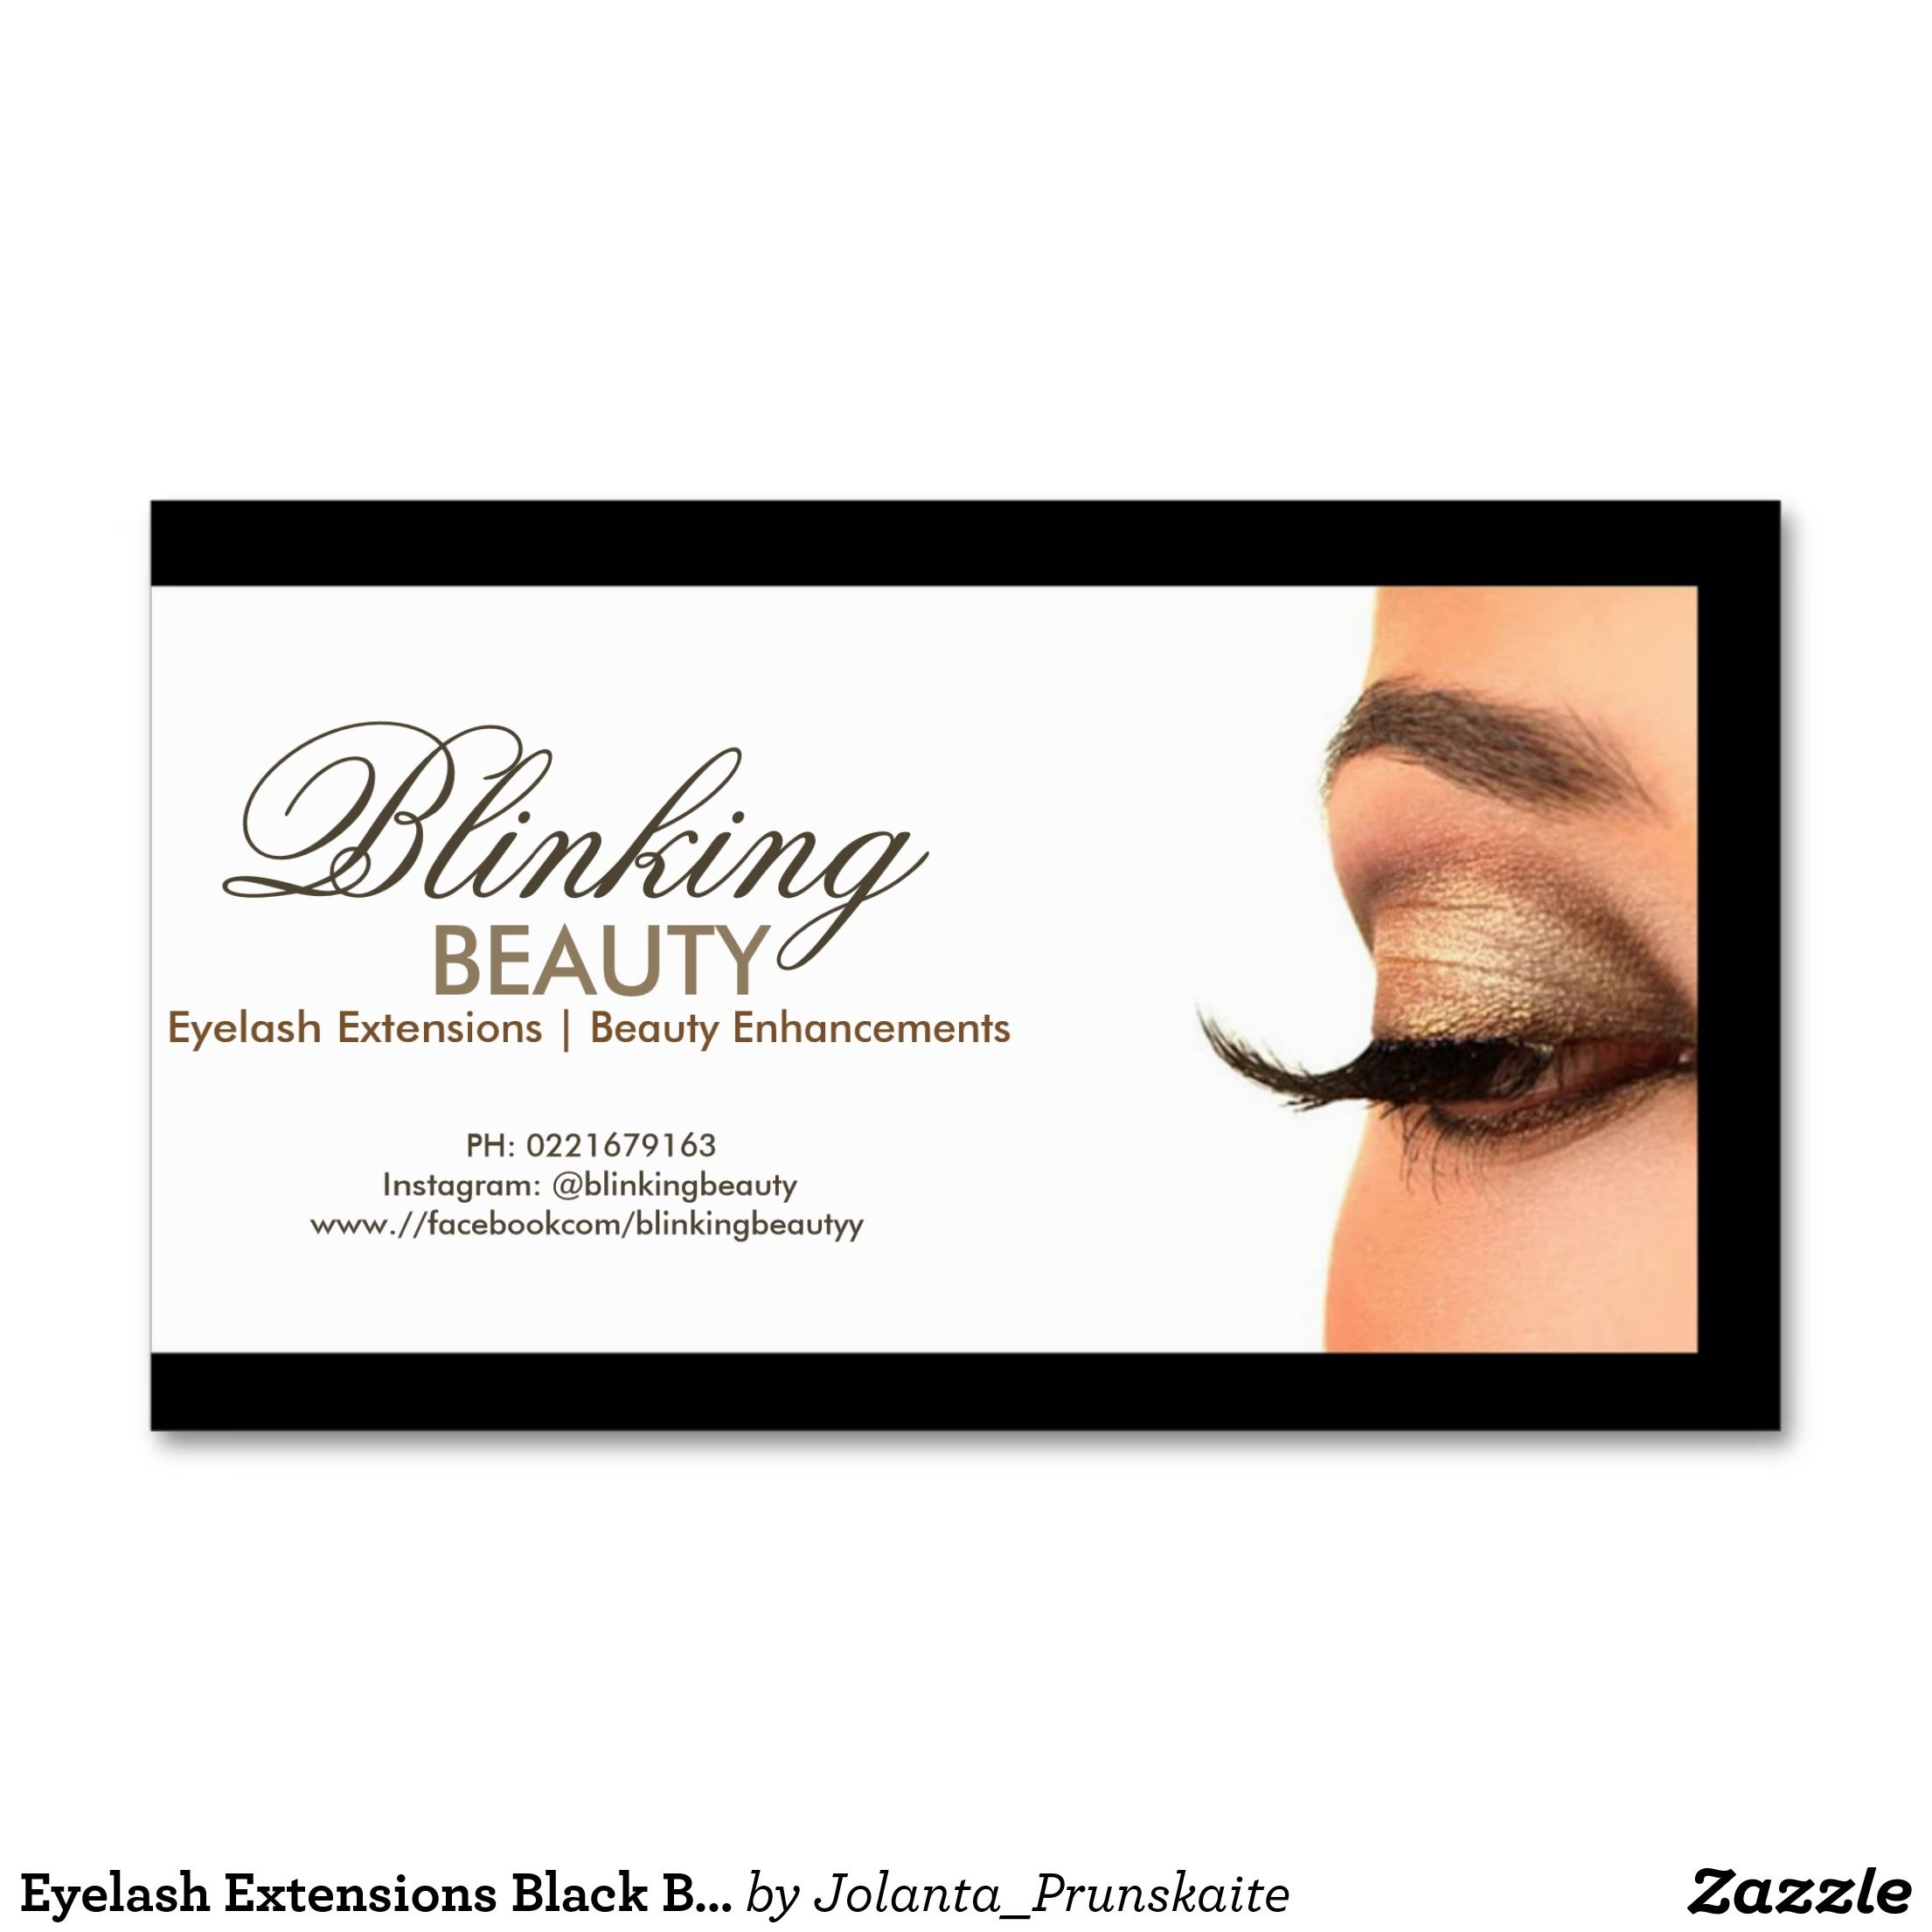 Eyelash extensions black border simple white card business cards for Eyelash extension business cards